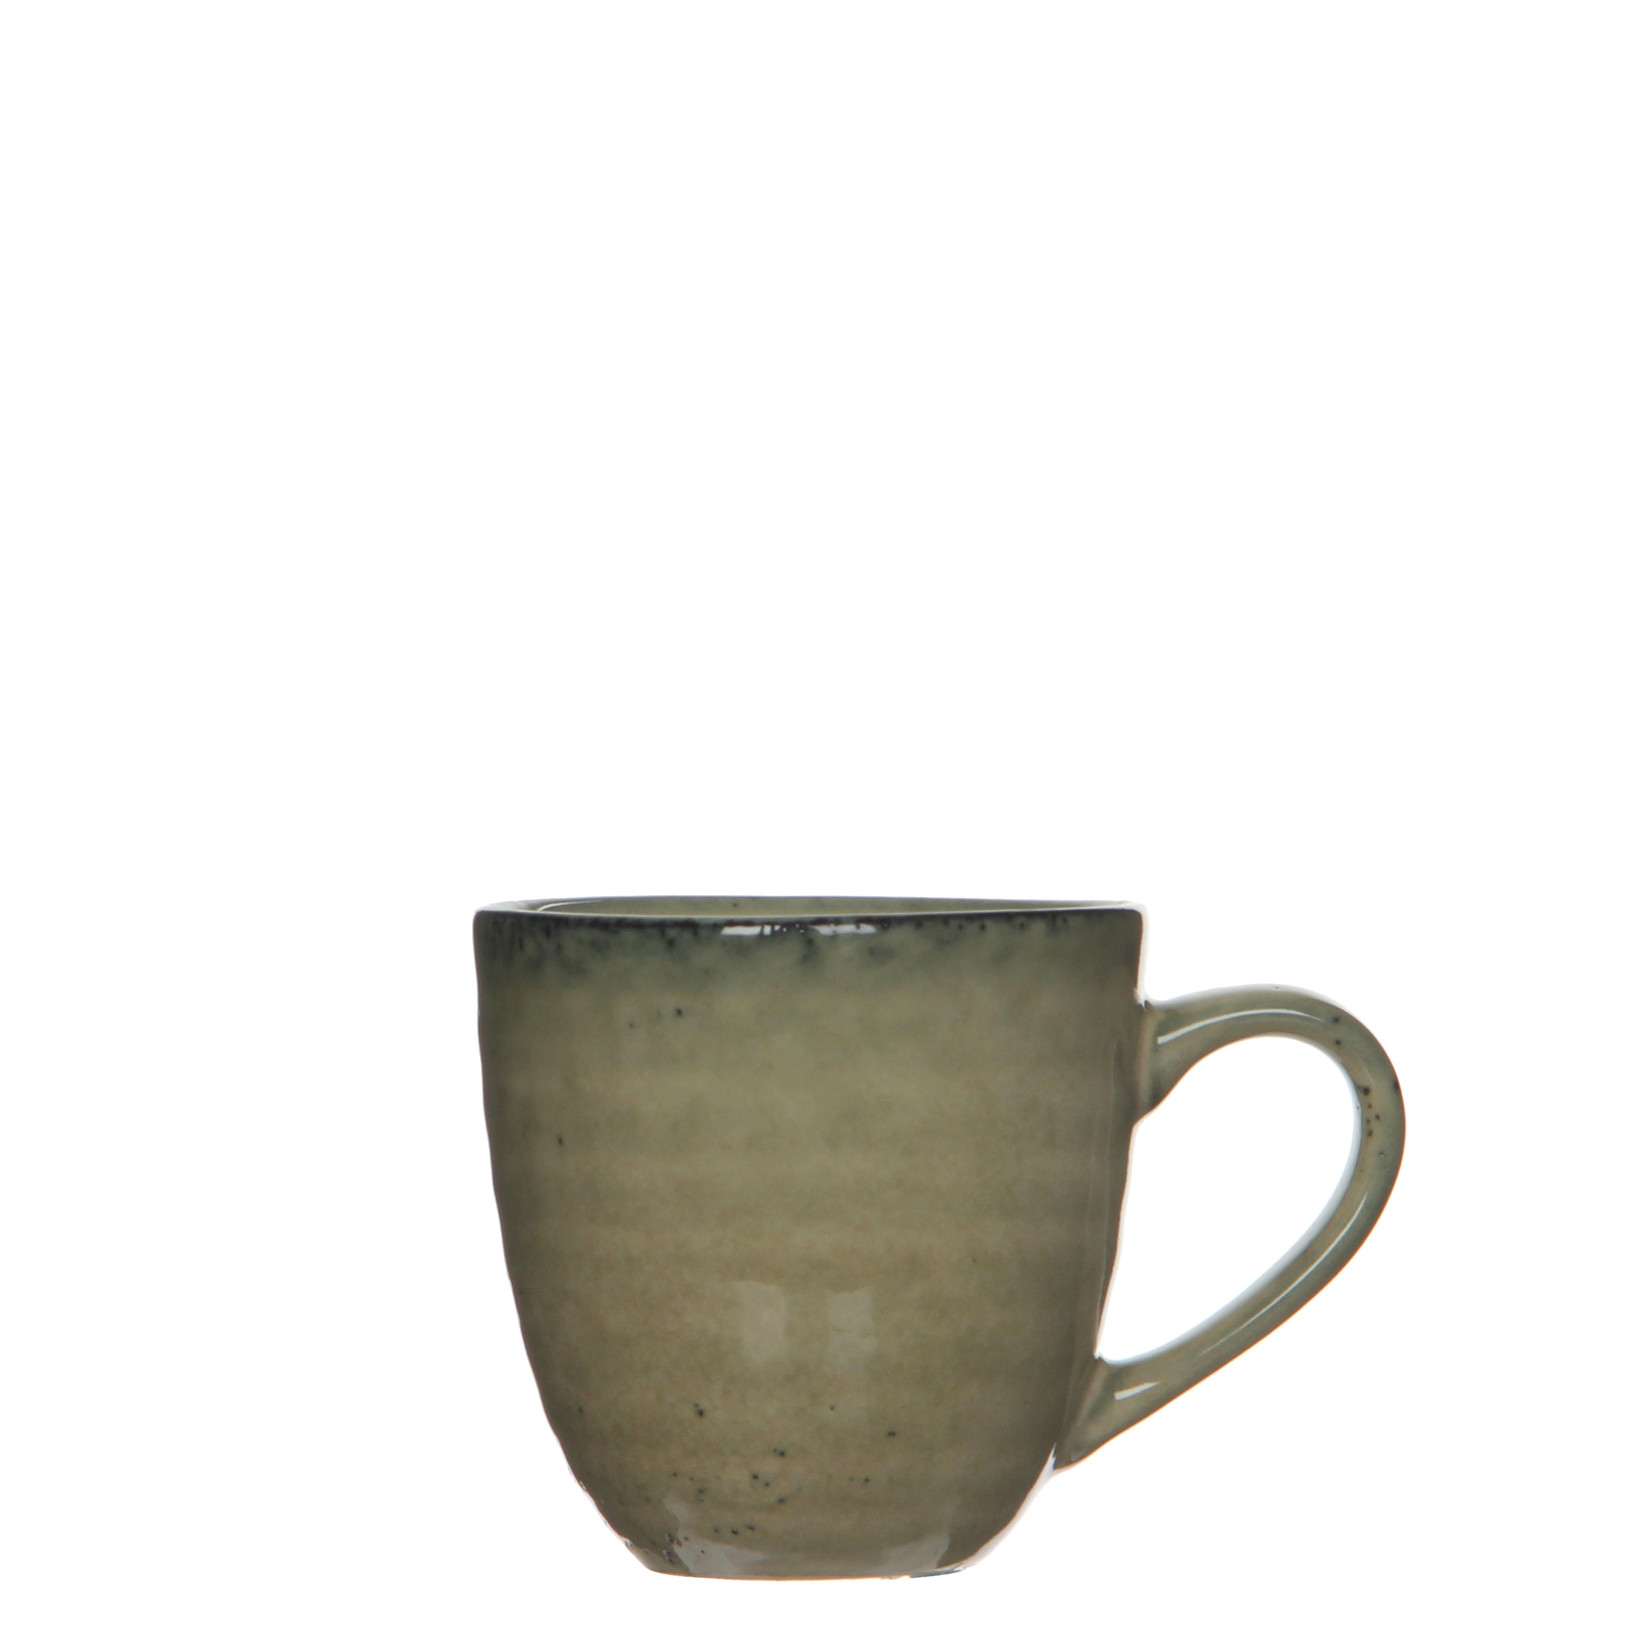 MiCa Tabo cup